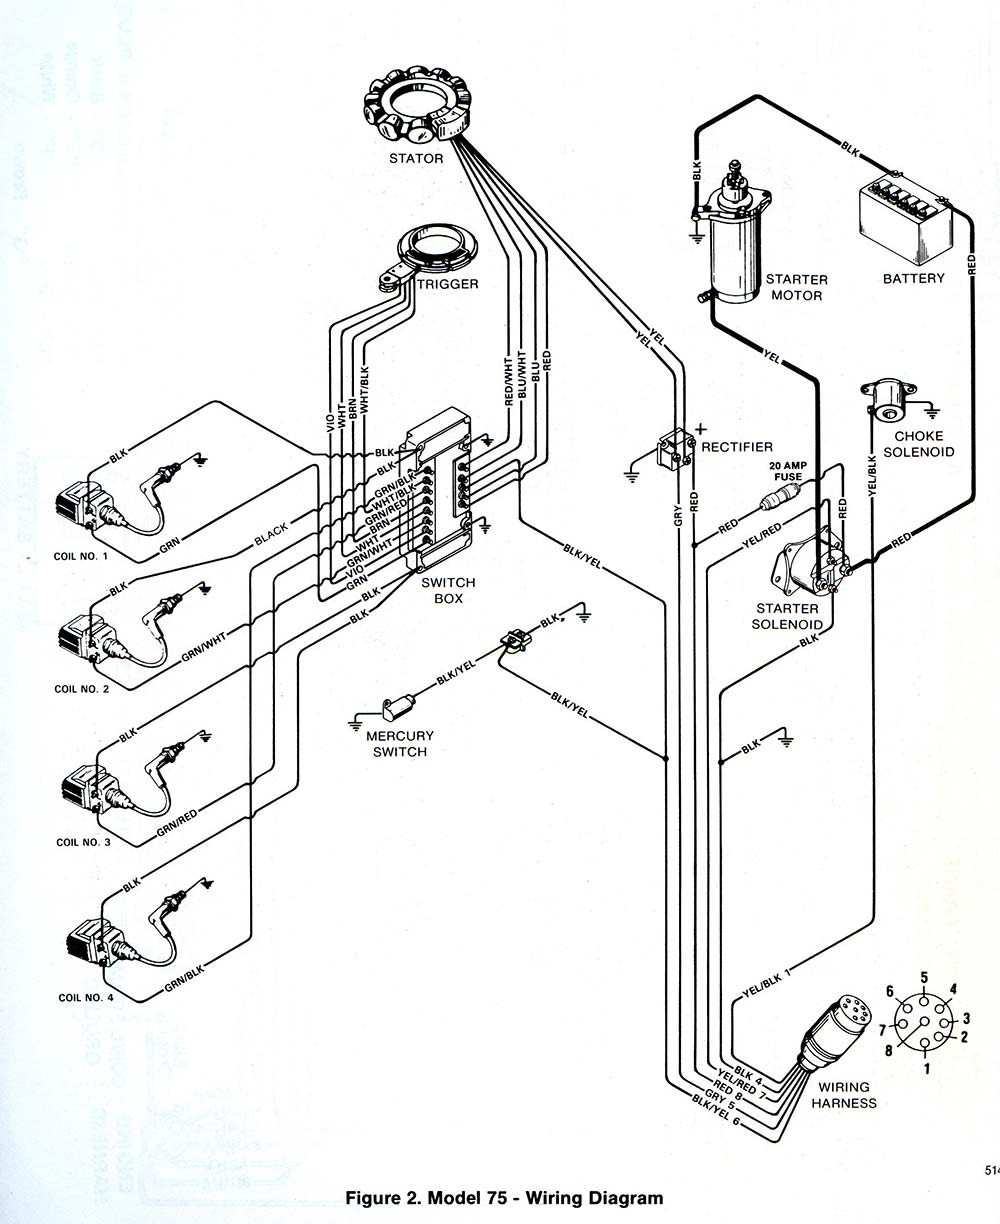 1973 mercury 500 outboard motor wiring diagram best wiring library 2011 Mercury Milan Inside 1973 mercury 500 outboard motor wiring diagram